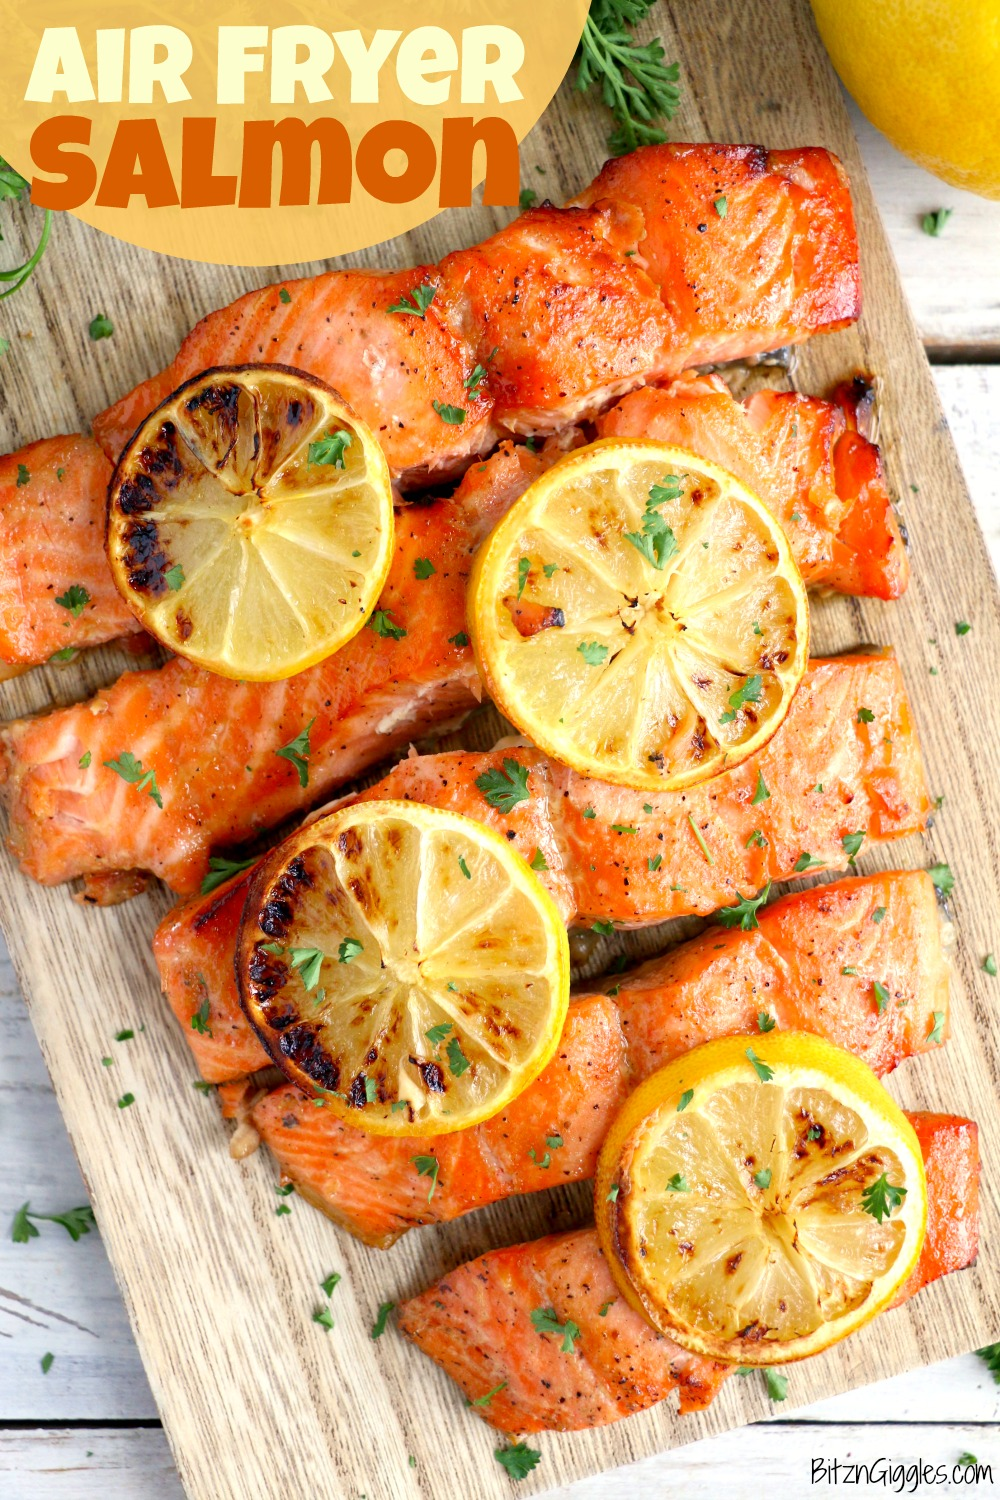 Salmon on a cutting board with lemon slices